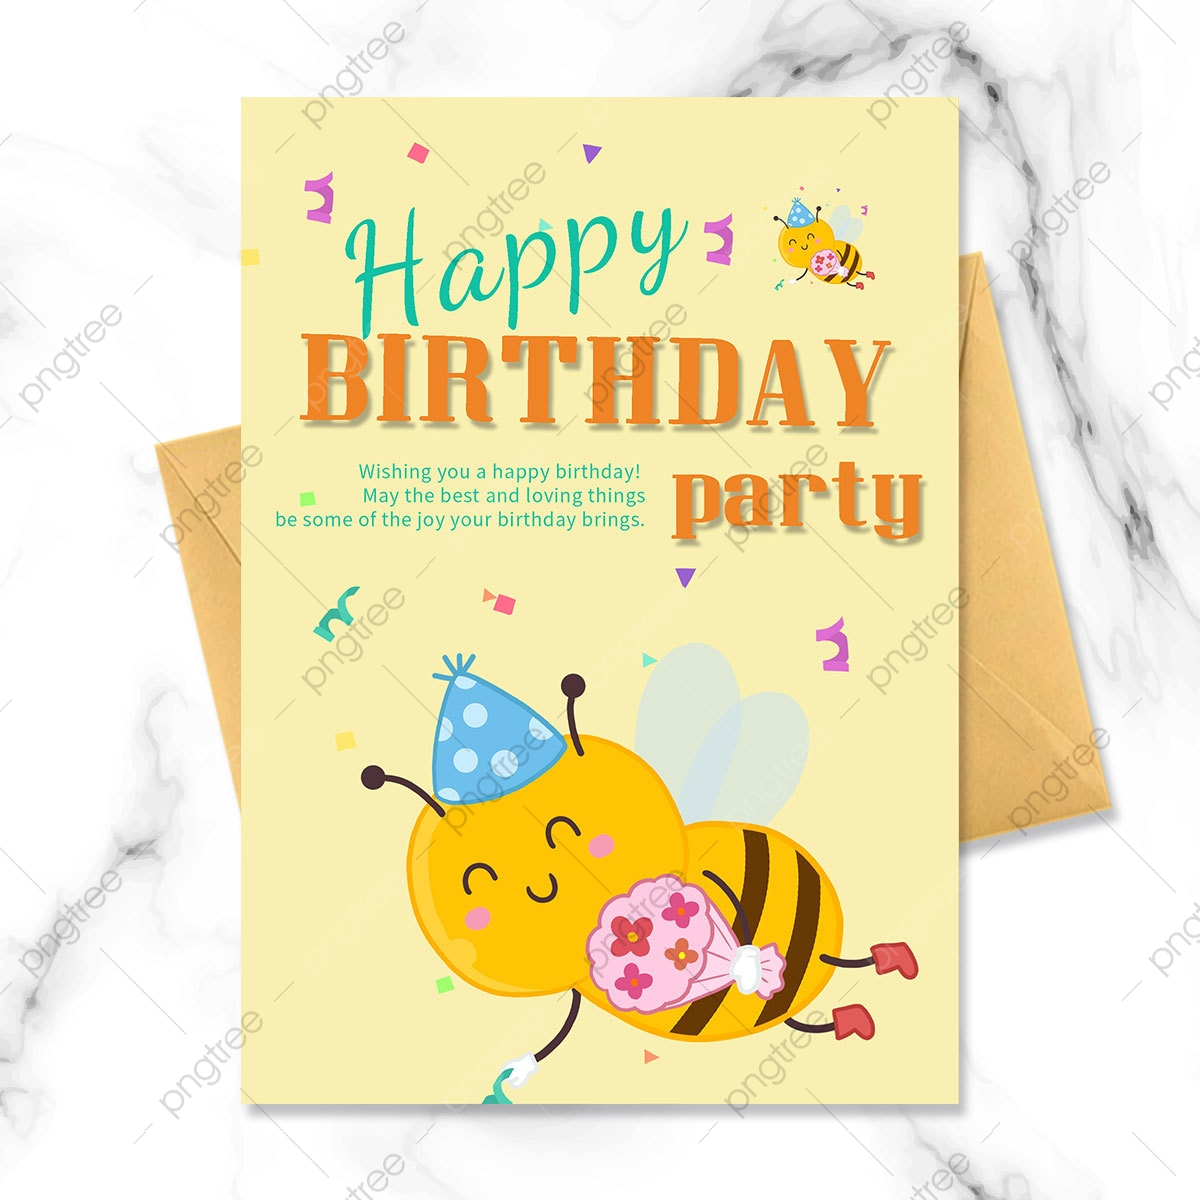 birthday party invitation with cartoon